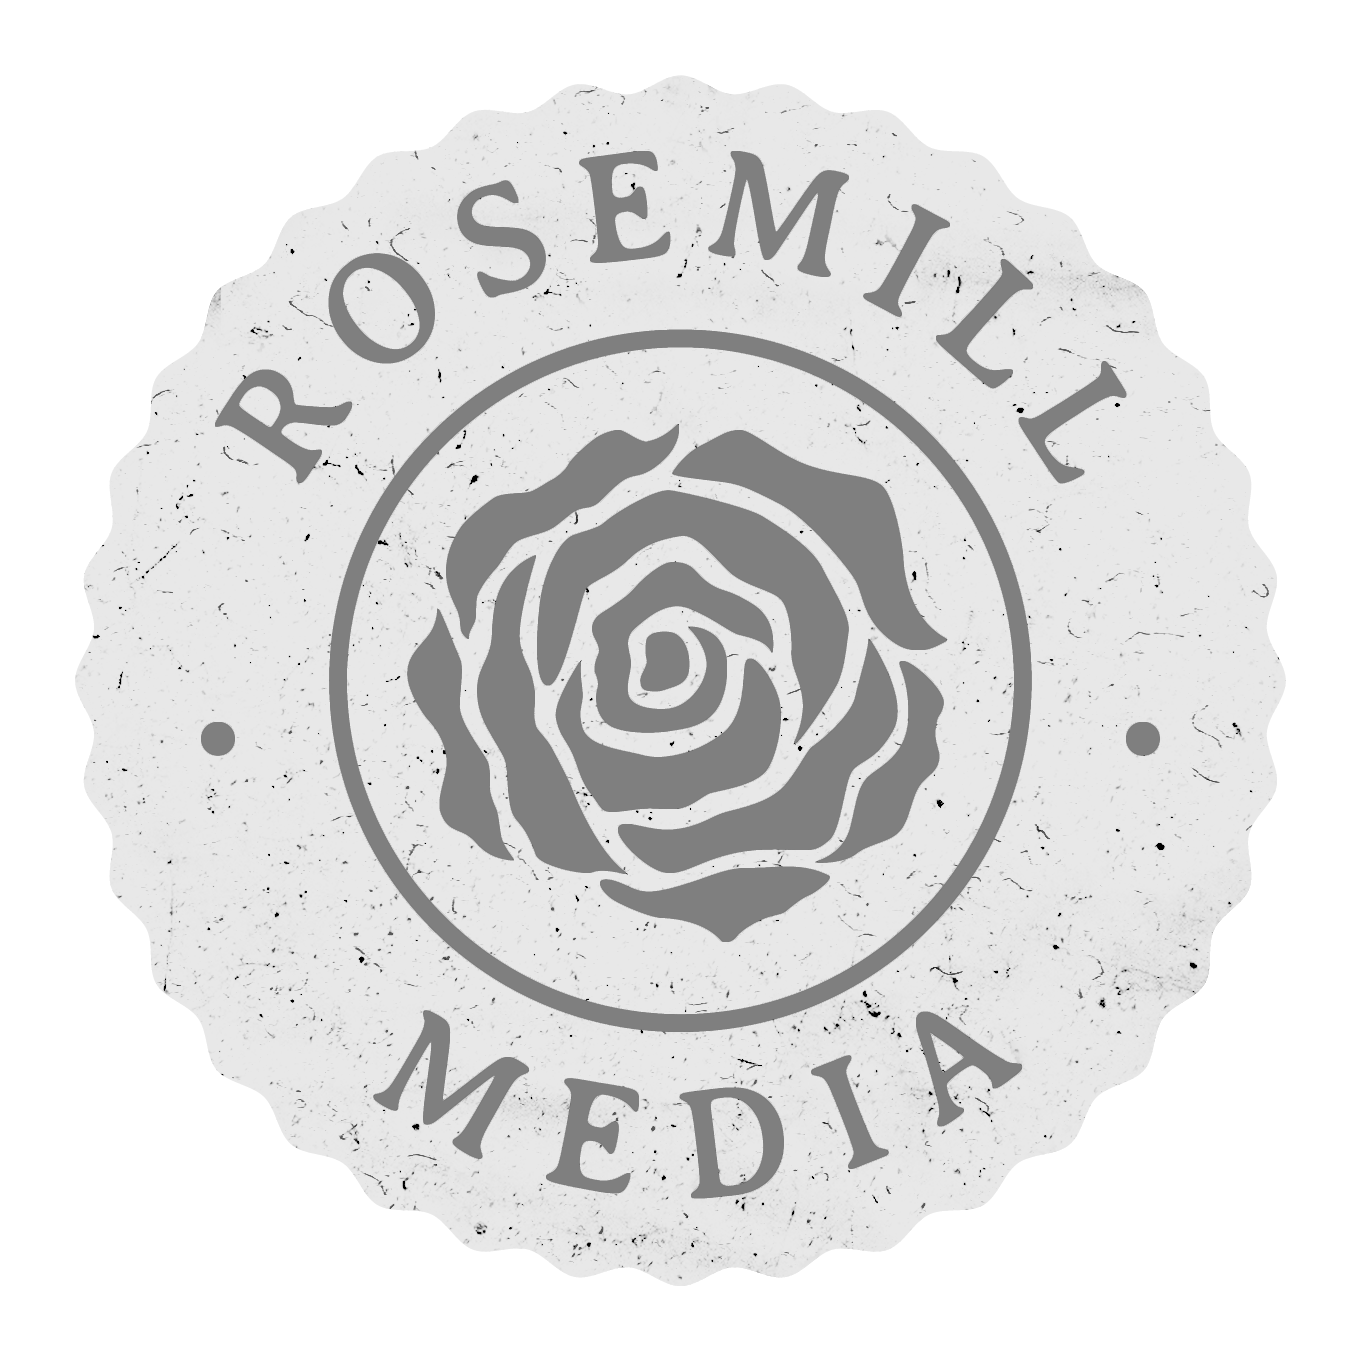 Rosemill Media is a Lifestyle Photography & Cinematography company based in Columbus, OH.